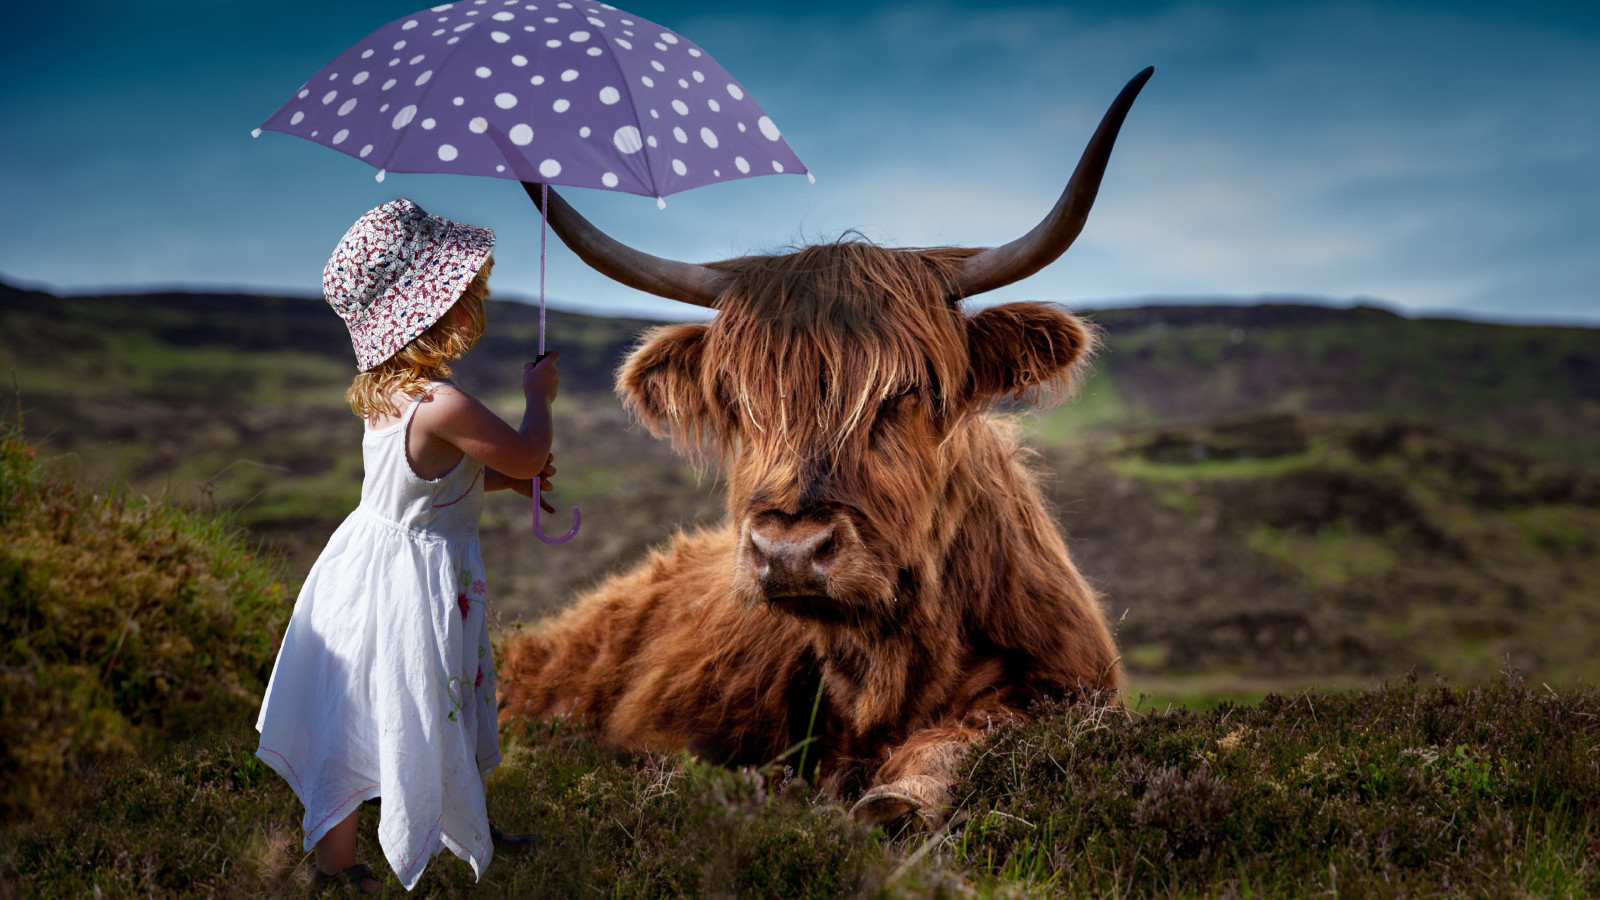 Child with the umbrella and the funny cow wallpaper 1600x900